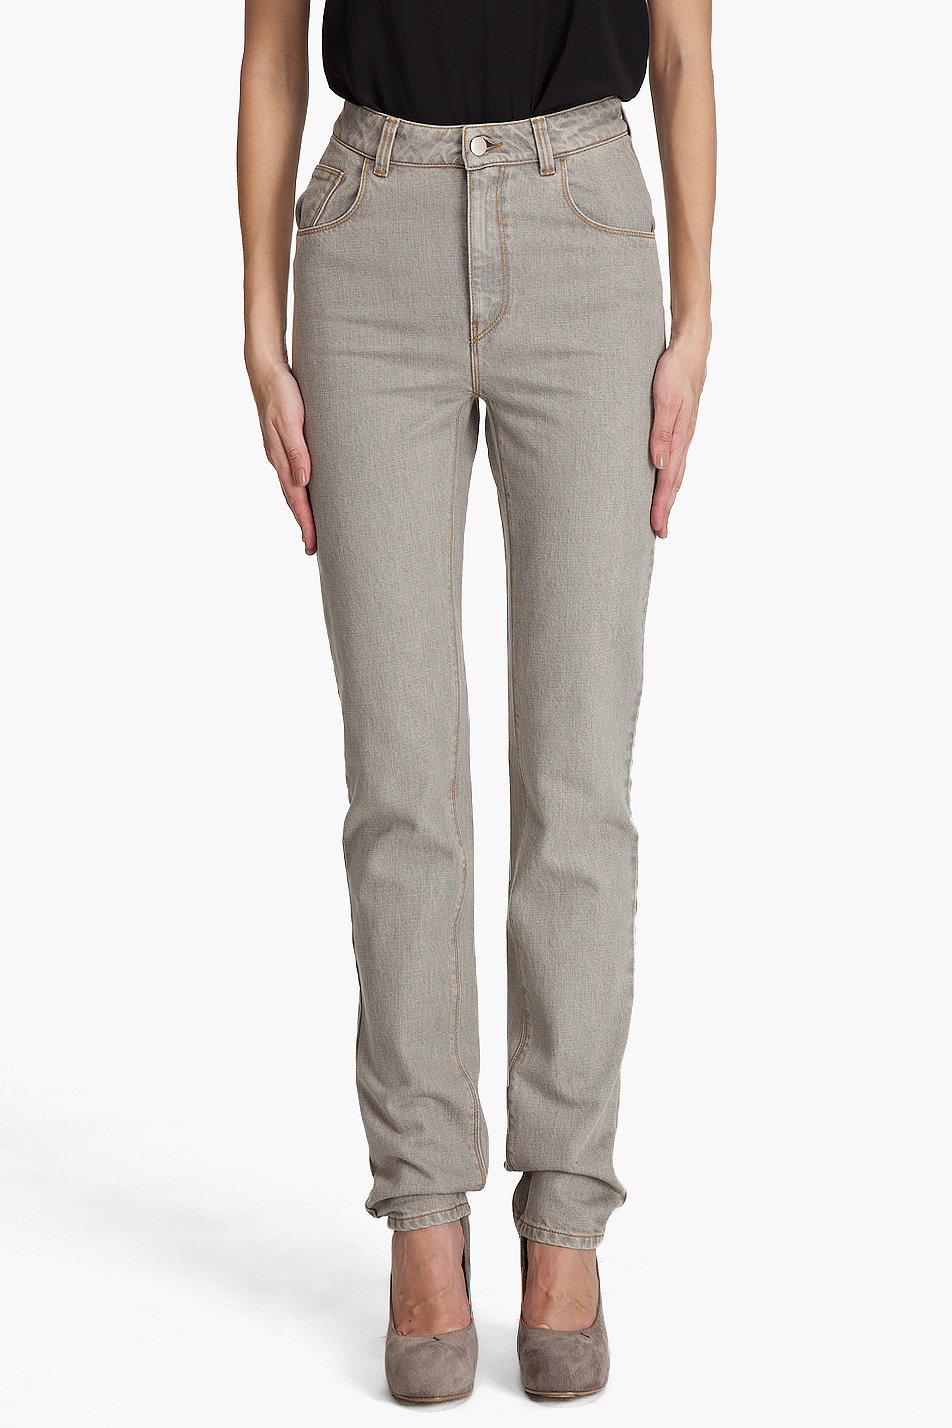 Hussein chalayan High Waist Jeans in Gray | Lyst